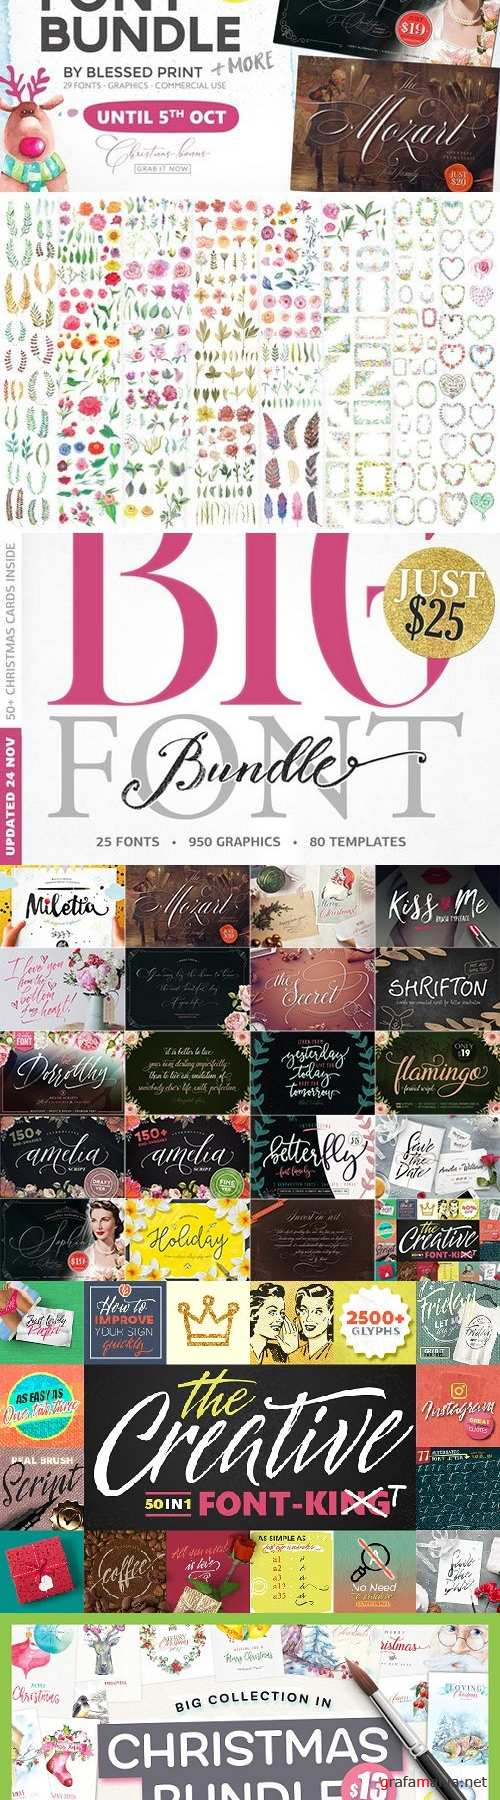 All Shop BIG BUNDLE by BlessedPrint 1870068